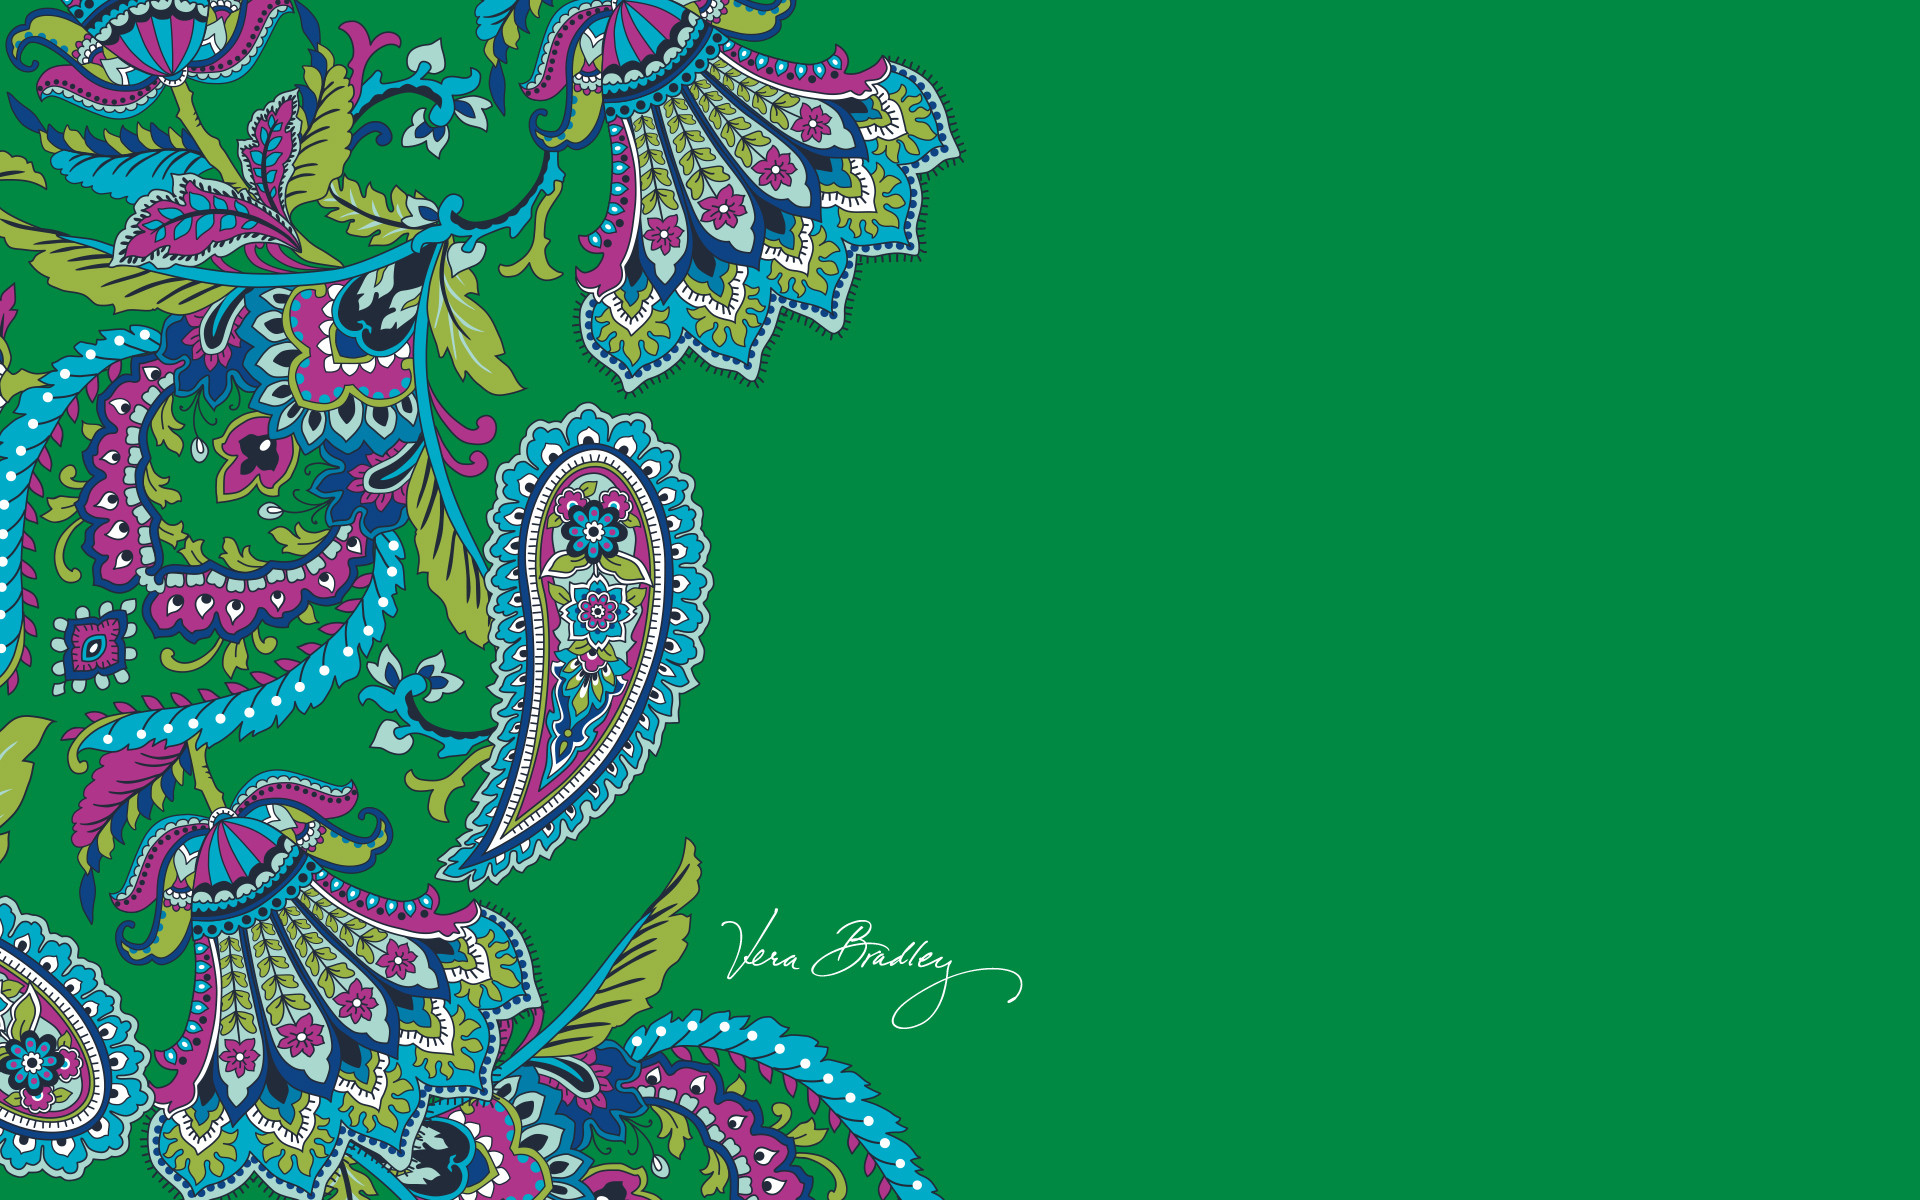 Fall Lilly Pulitzer Wallpaper Paisley Wallpaper For Computers 57 Images